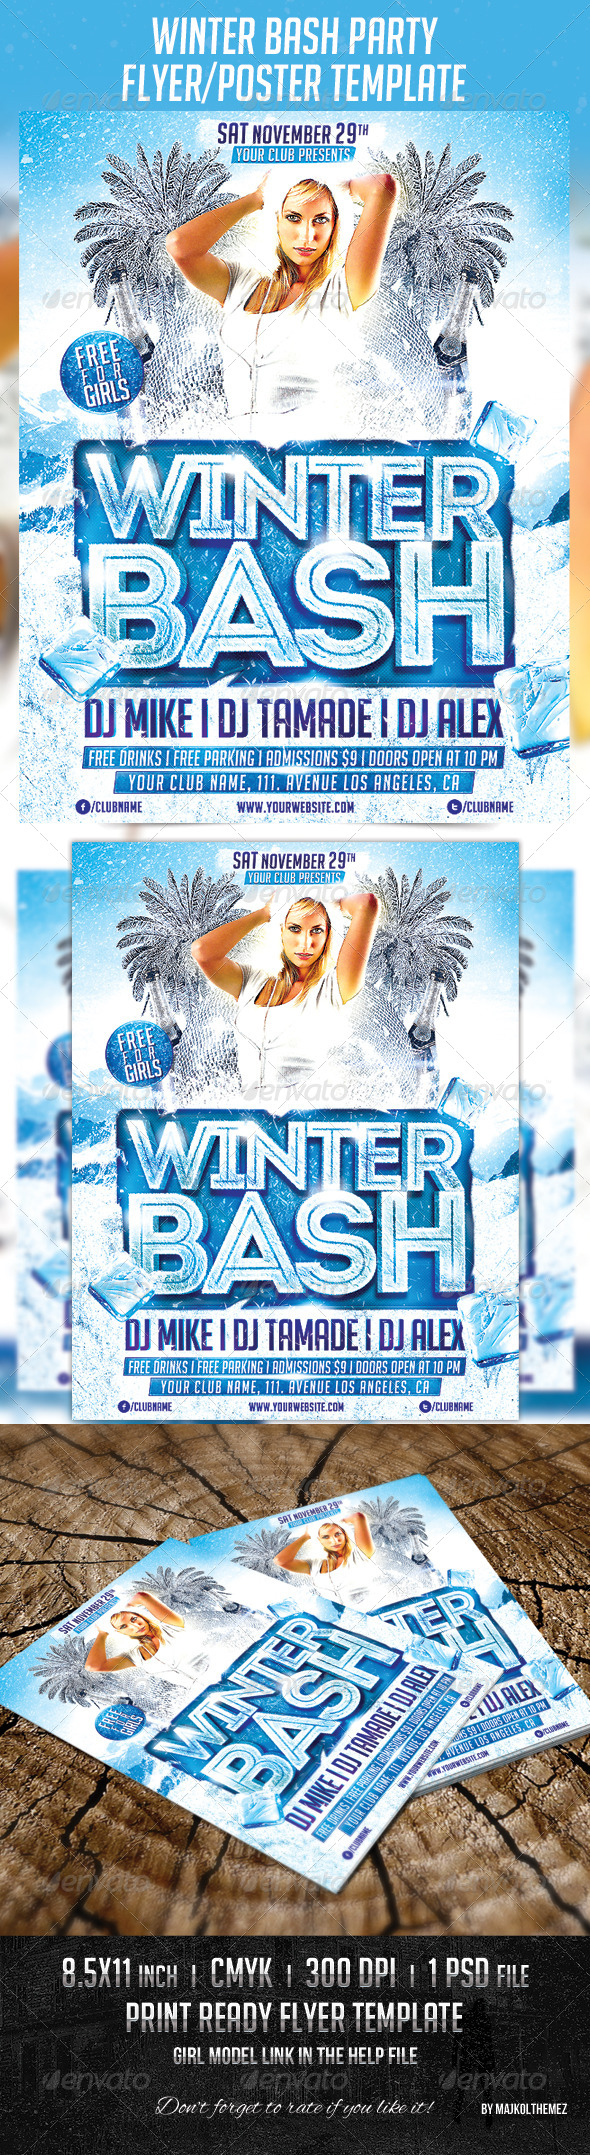 GraphicRiver Winter Bash Party Poster Template 6001591